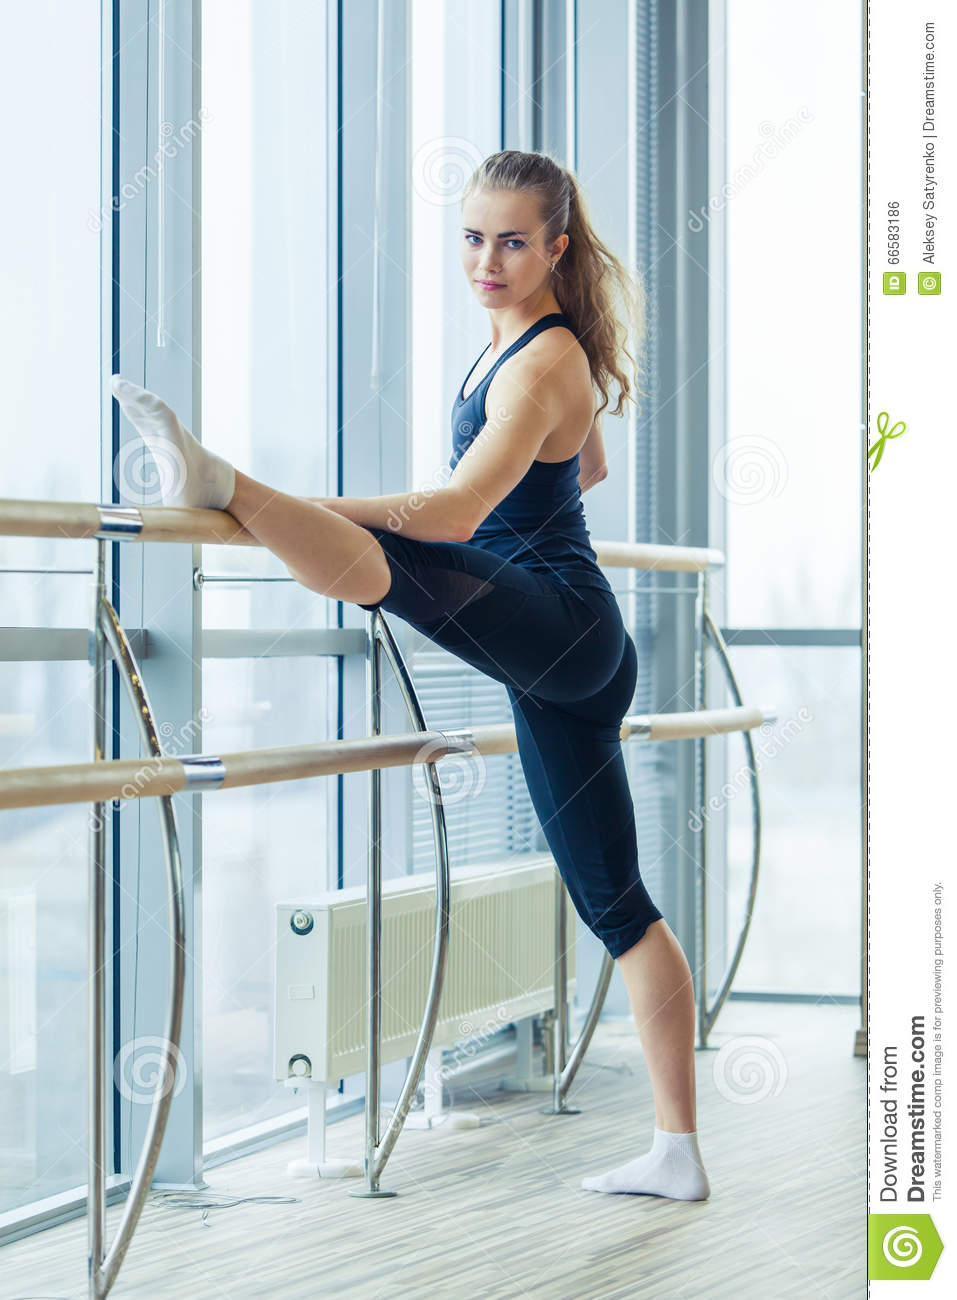 woman standing near barre in fitness center stock photo image 66583186. Black Bedroom Furniture Sets. Home Design Ideas